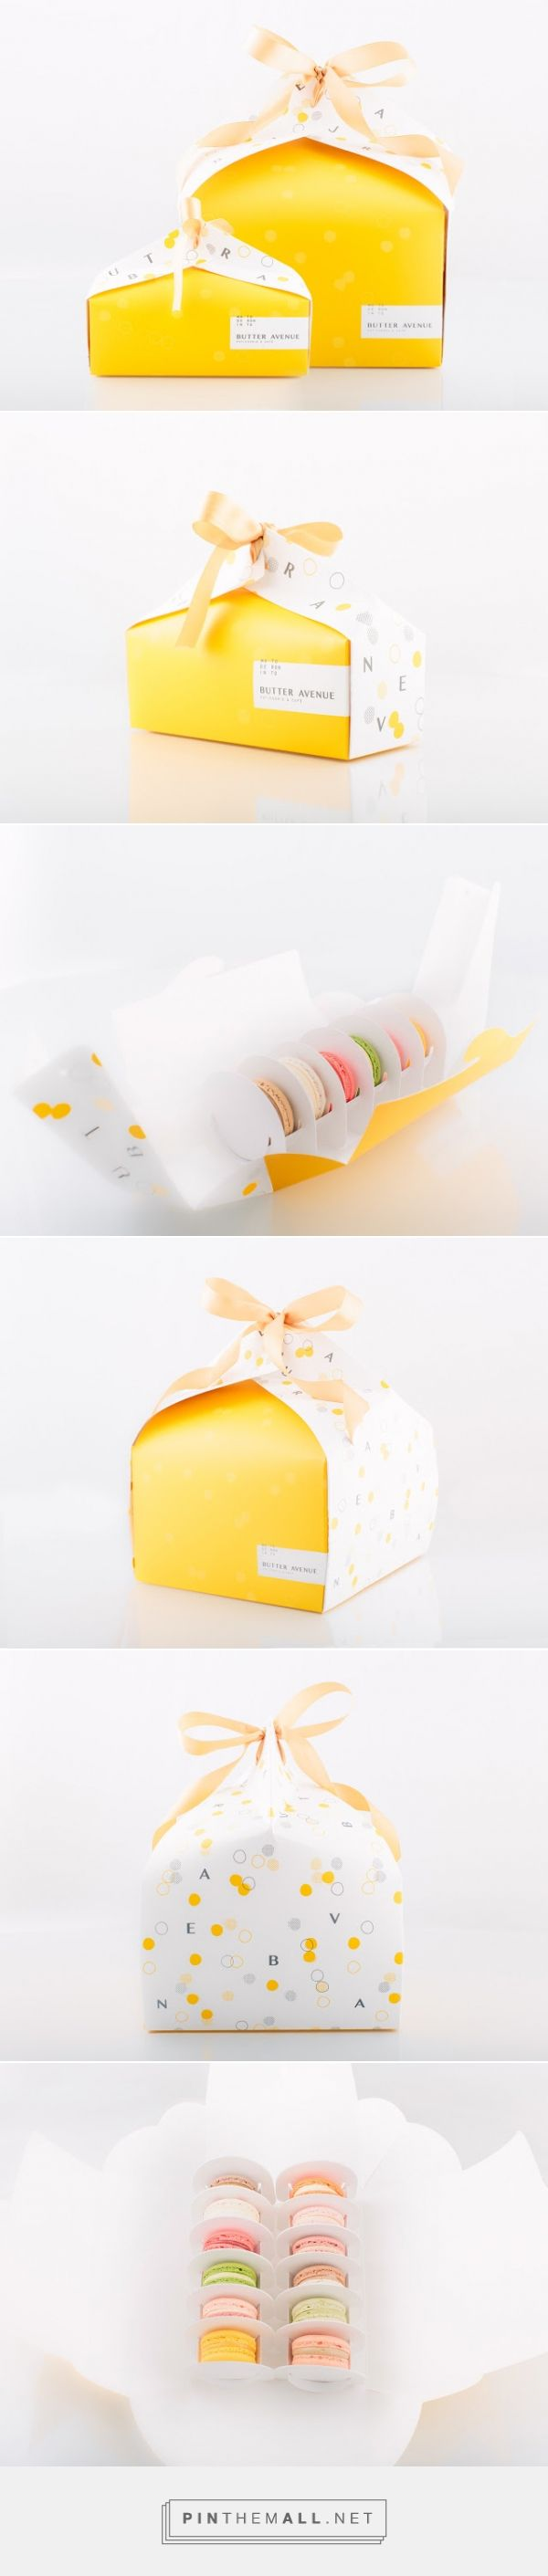 Butter Avenue Patisserie & #Cafe #packaging by Arc & Co. Design Collective - http://www.packagingoftheworld.com/2015/02/butter-avenue-patisserie-cafe.html